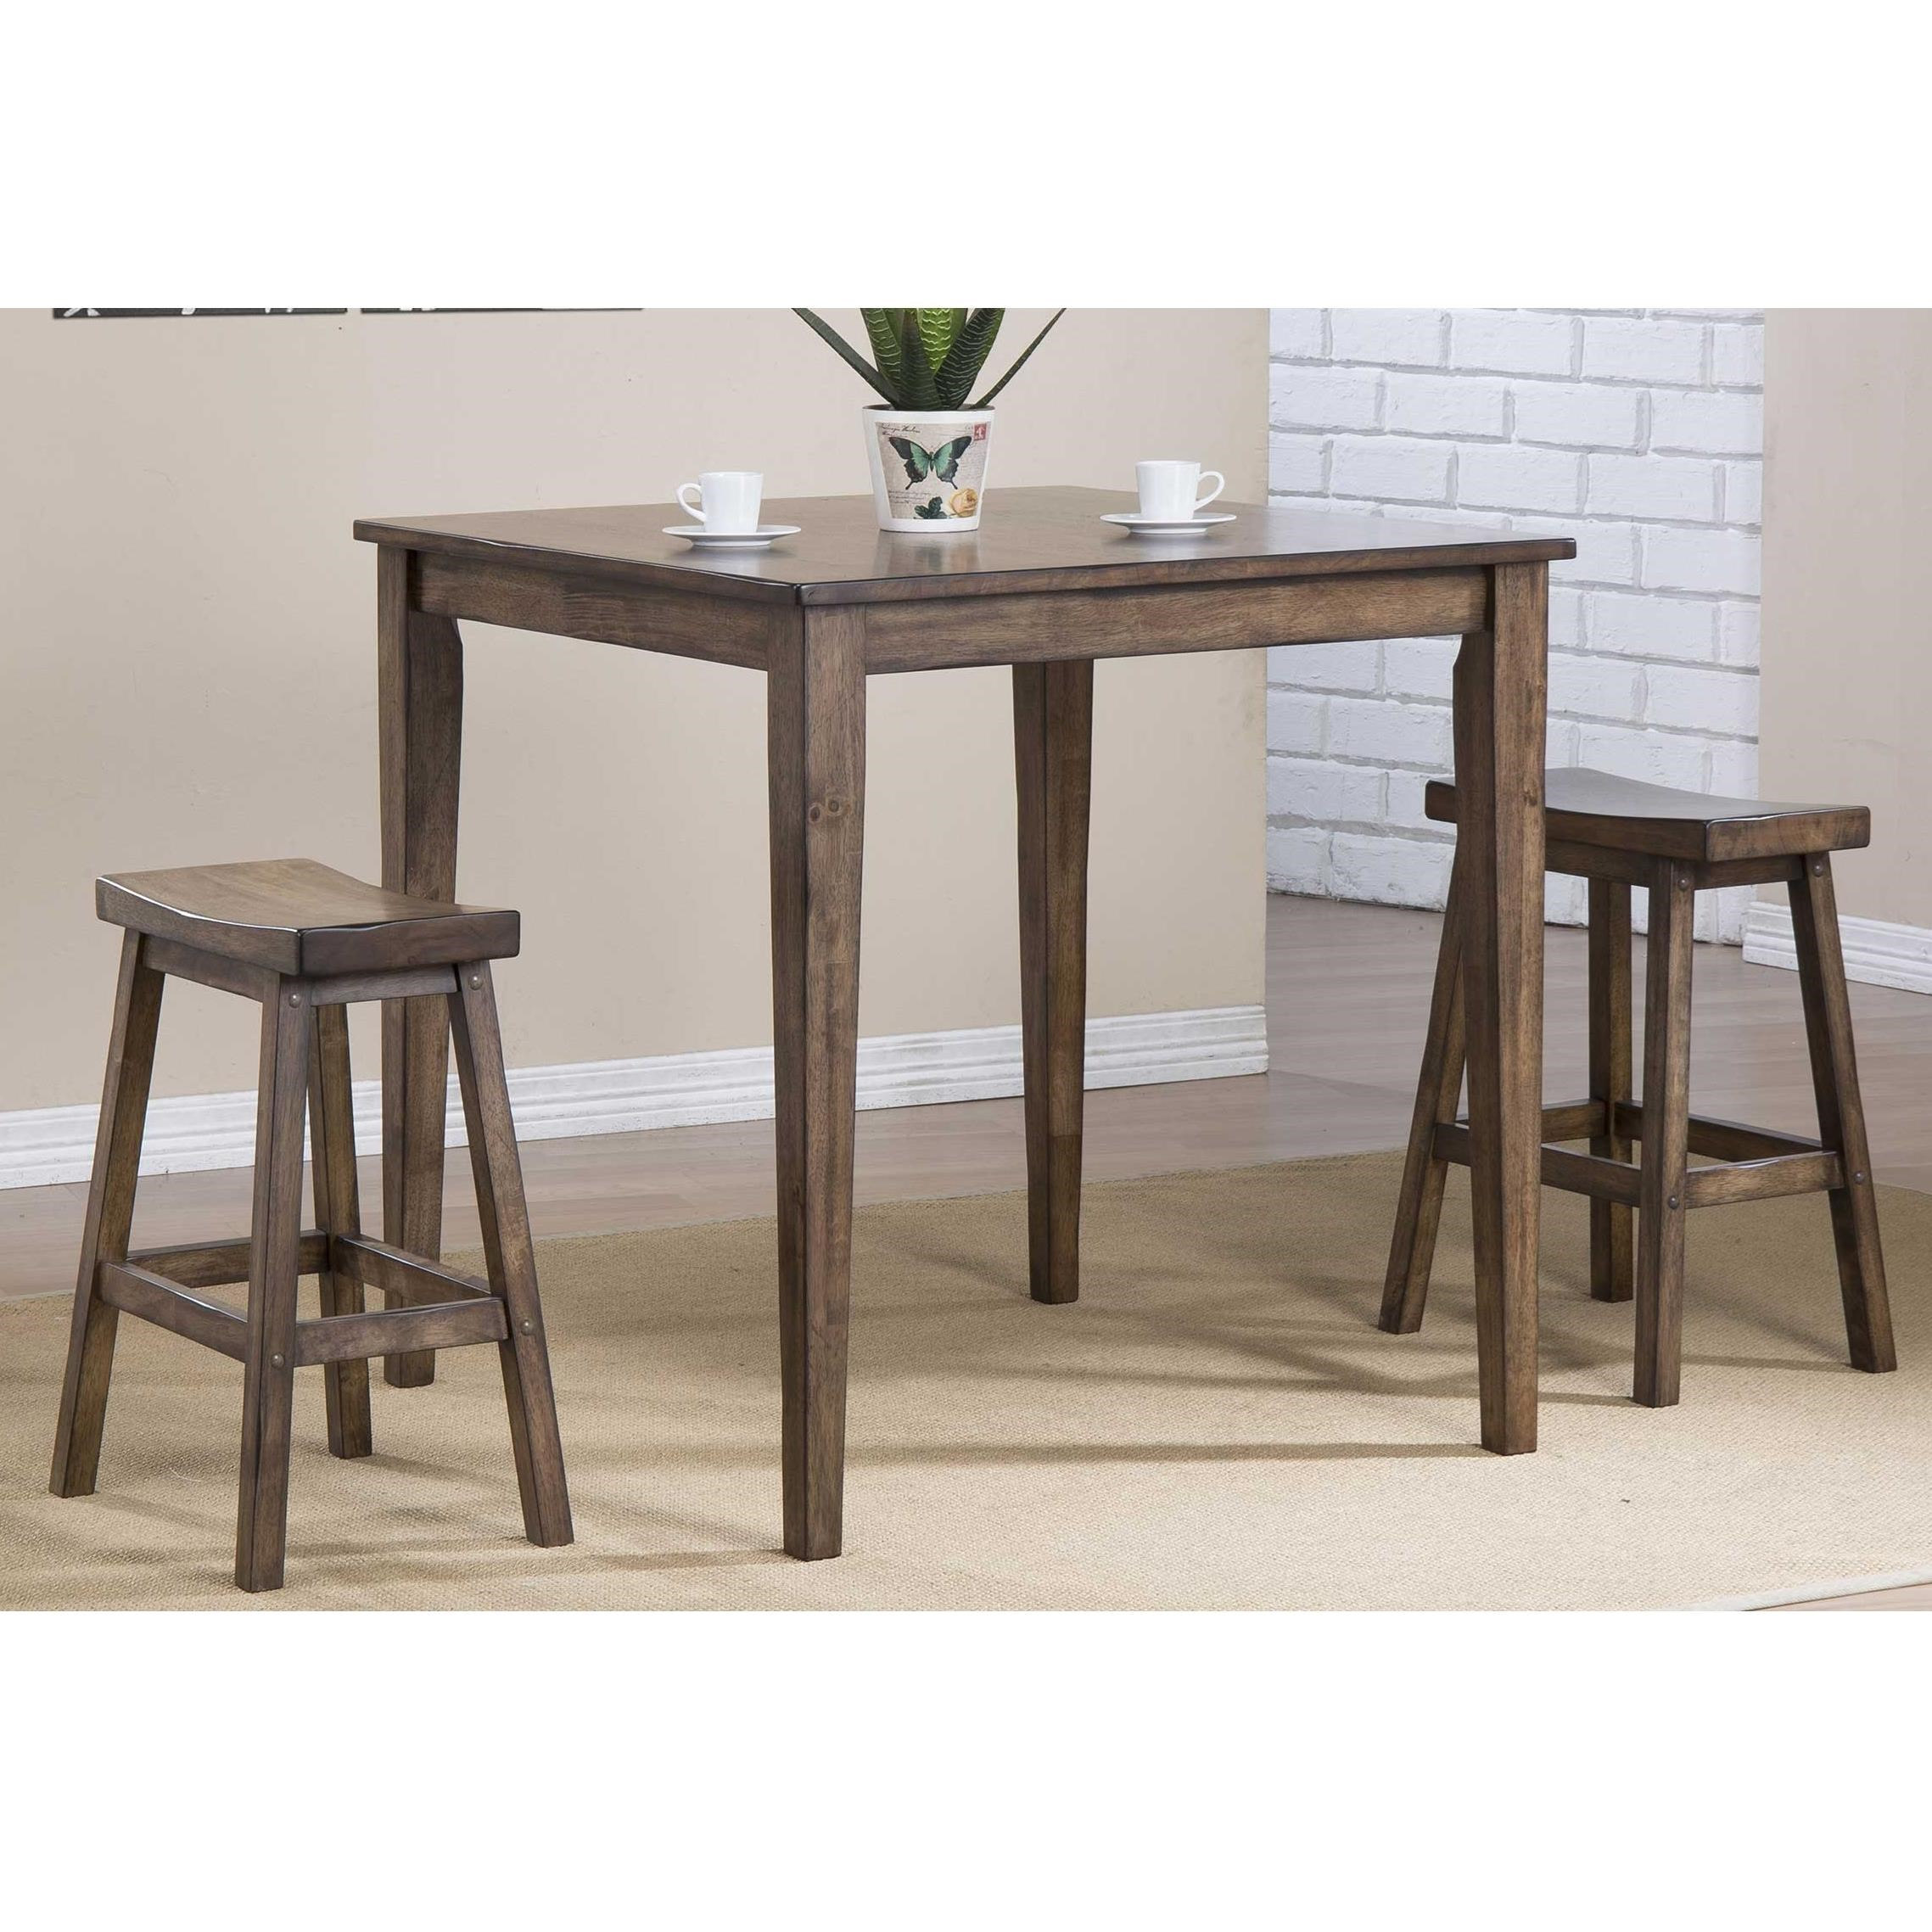 Carmel Counter Height Dining Set by Winners Only at Crowley Furniture & Mattress